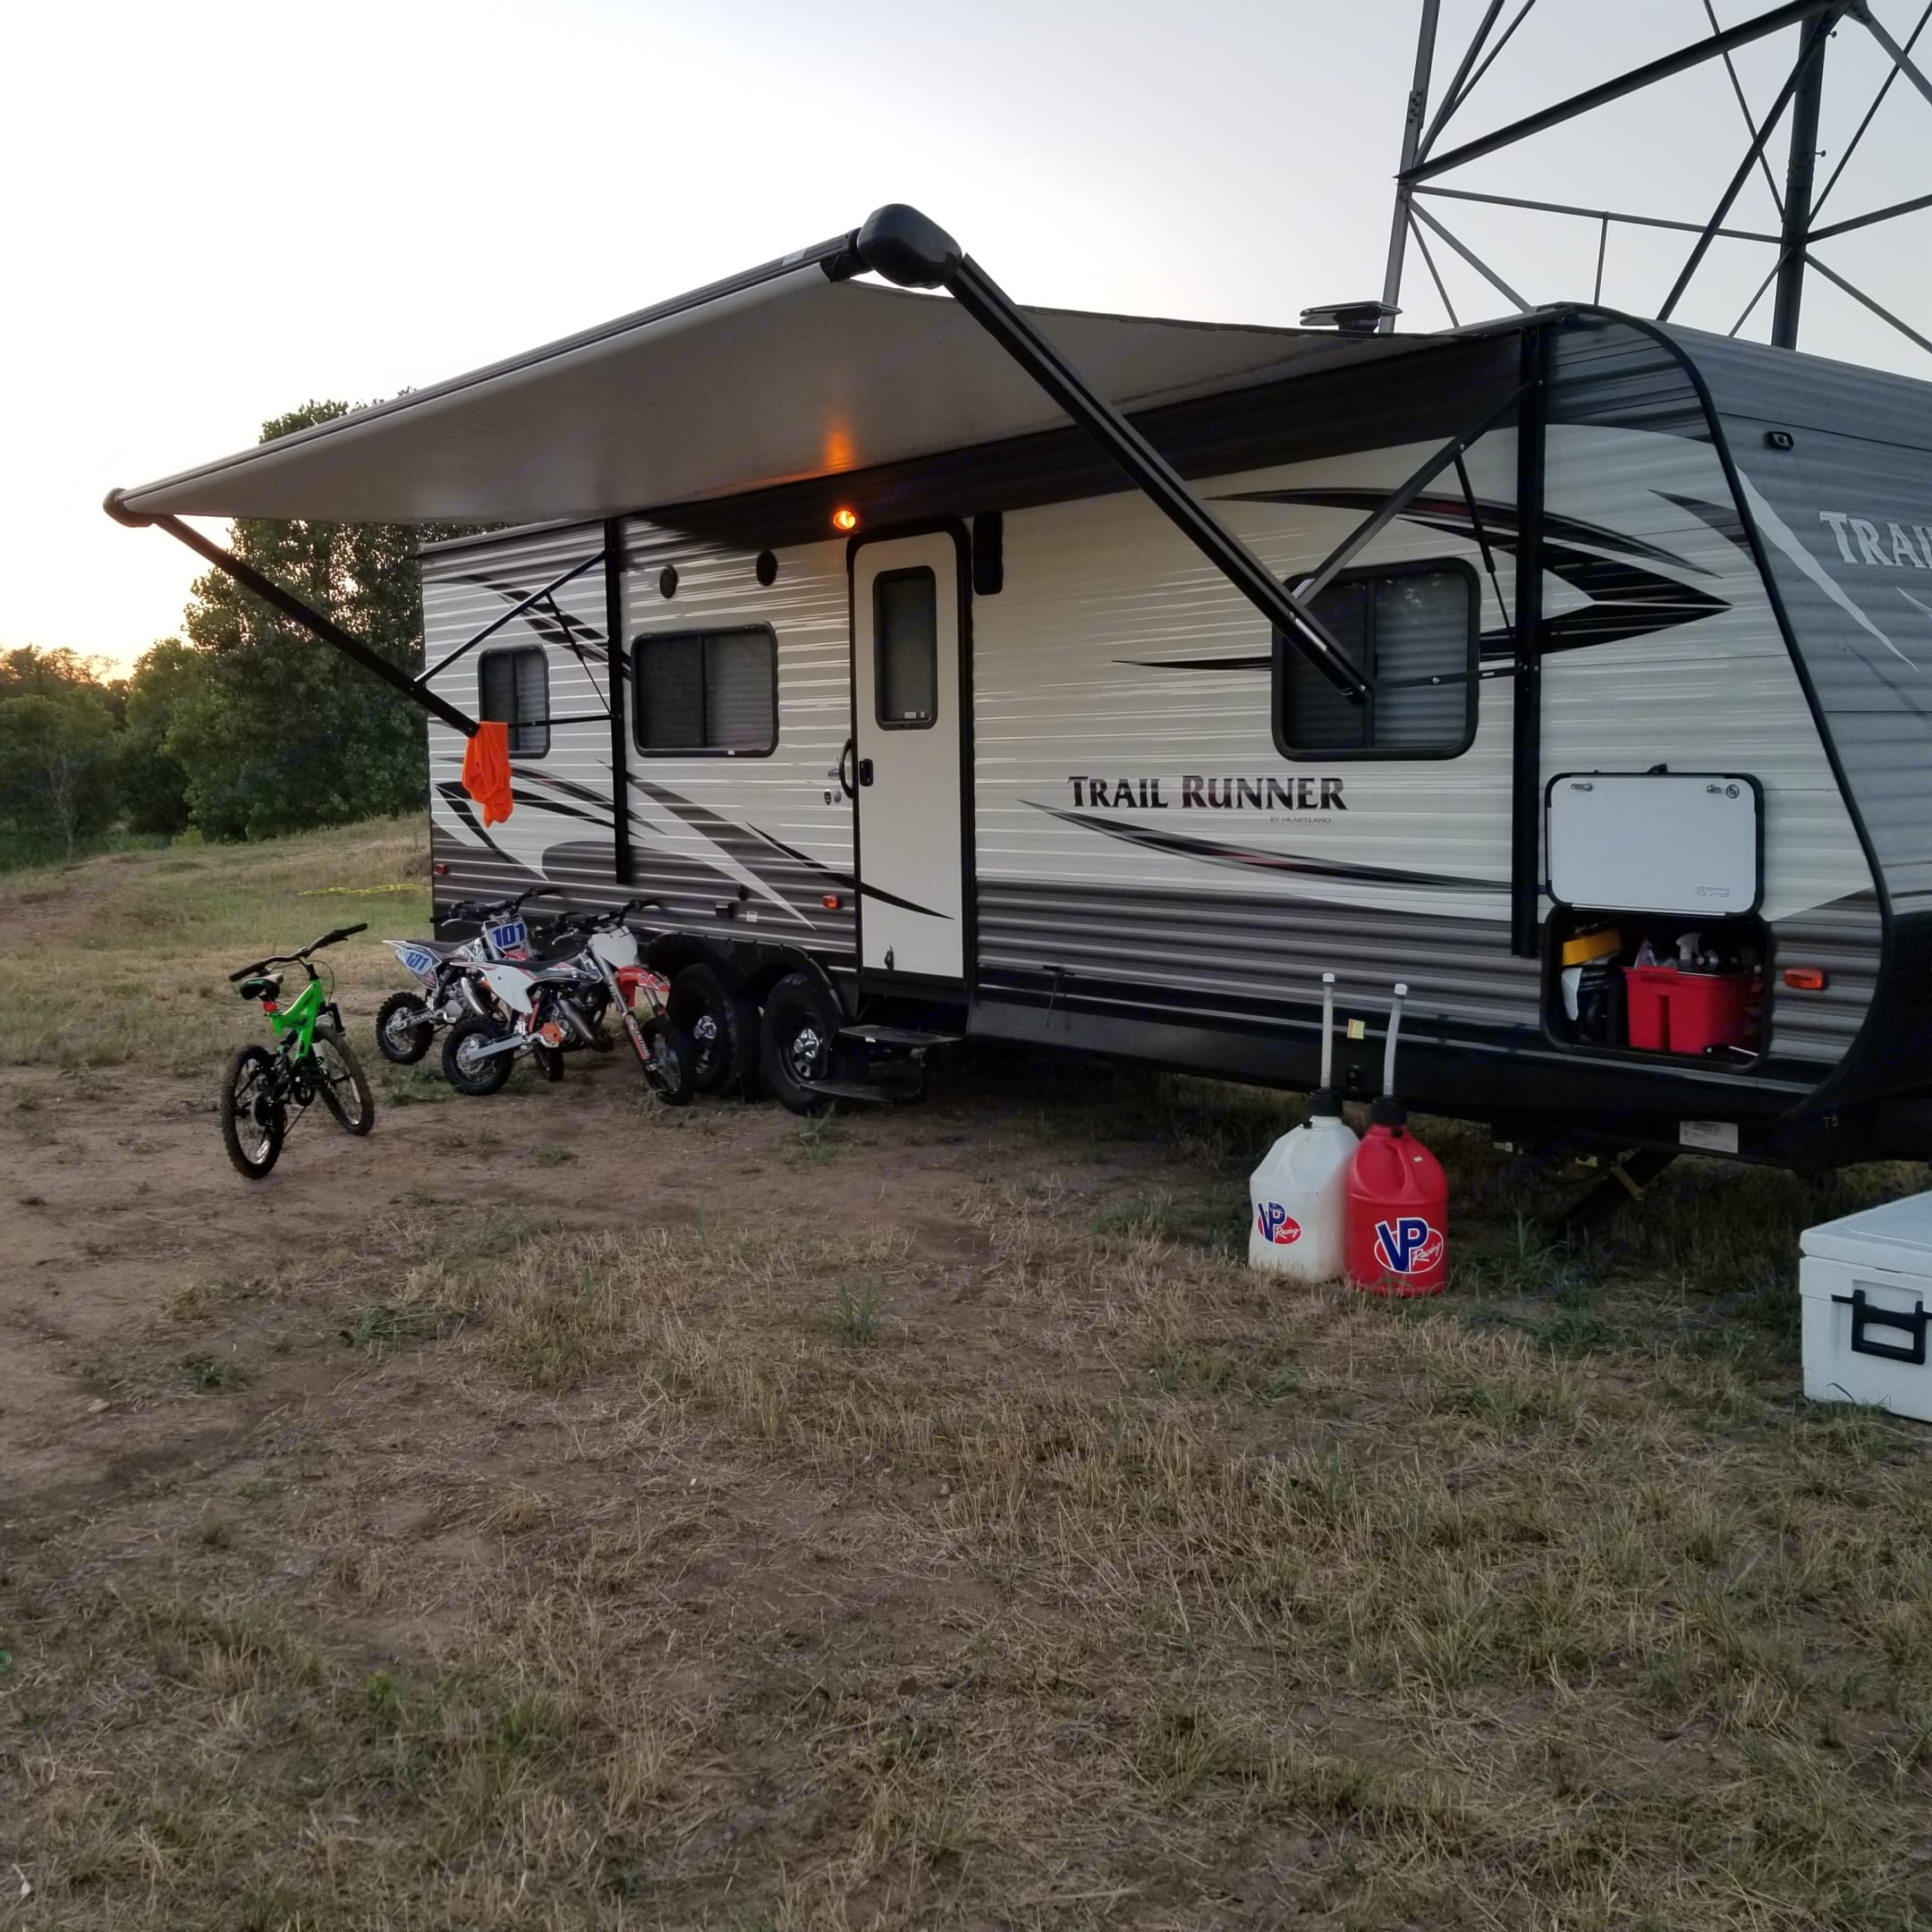 Big electric awning for shade. Out door led lights on awning. . Heartland Trail Runner 2017